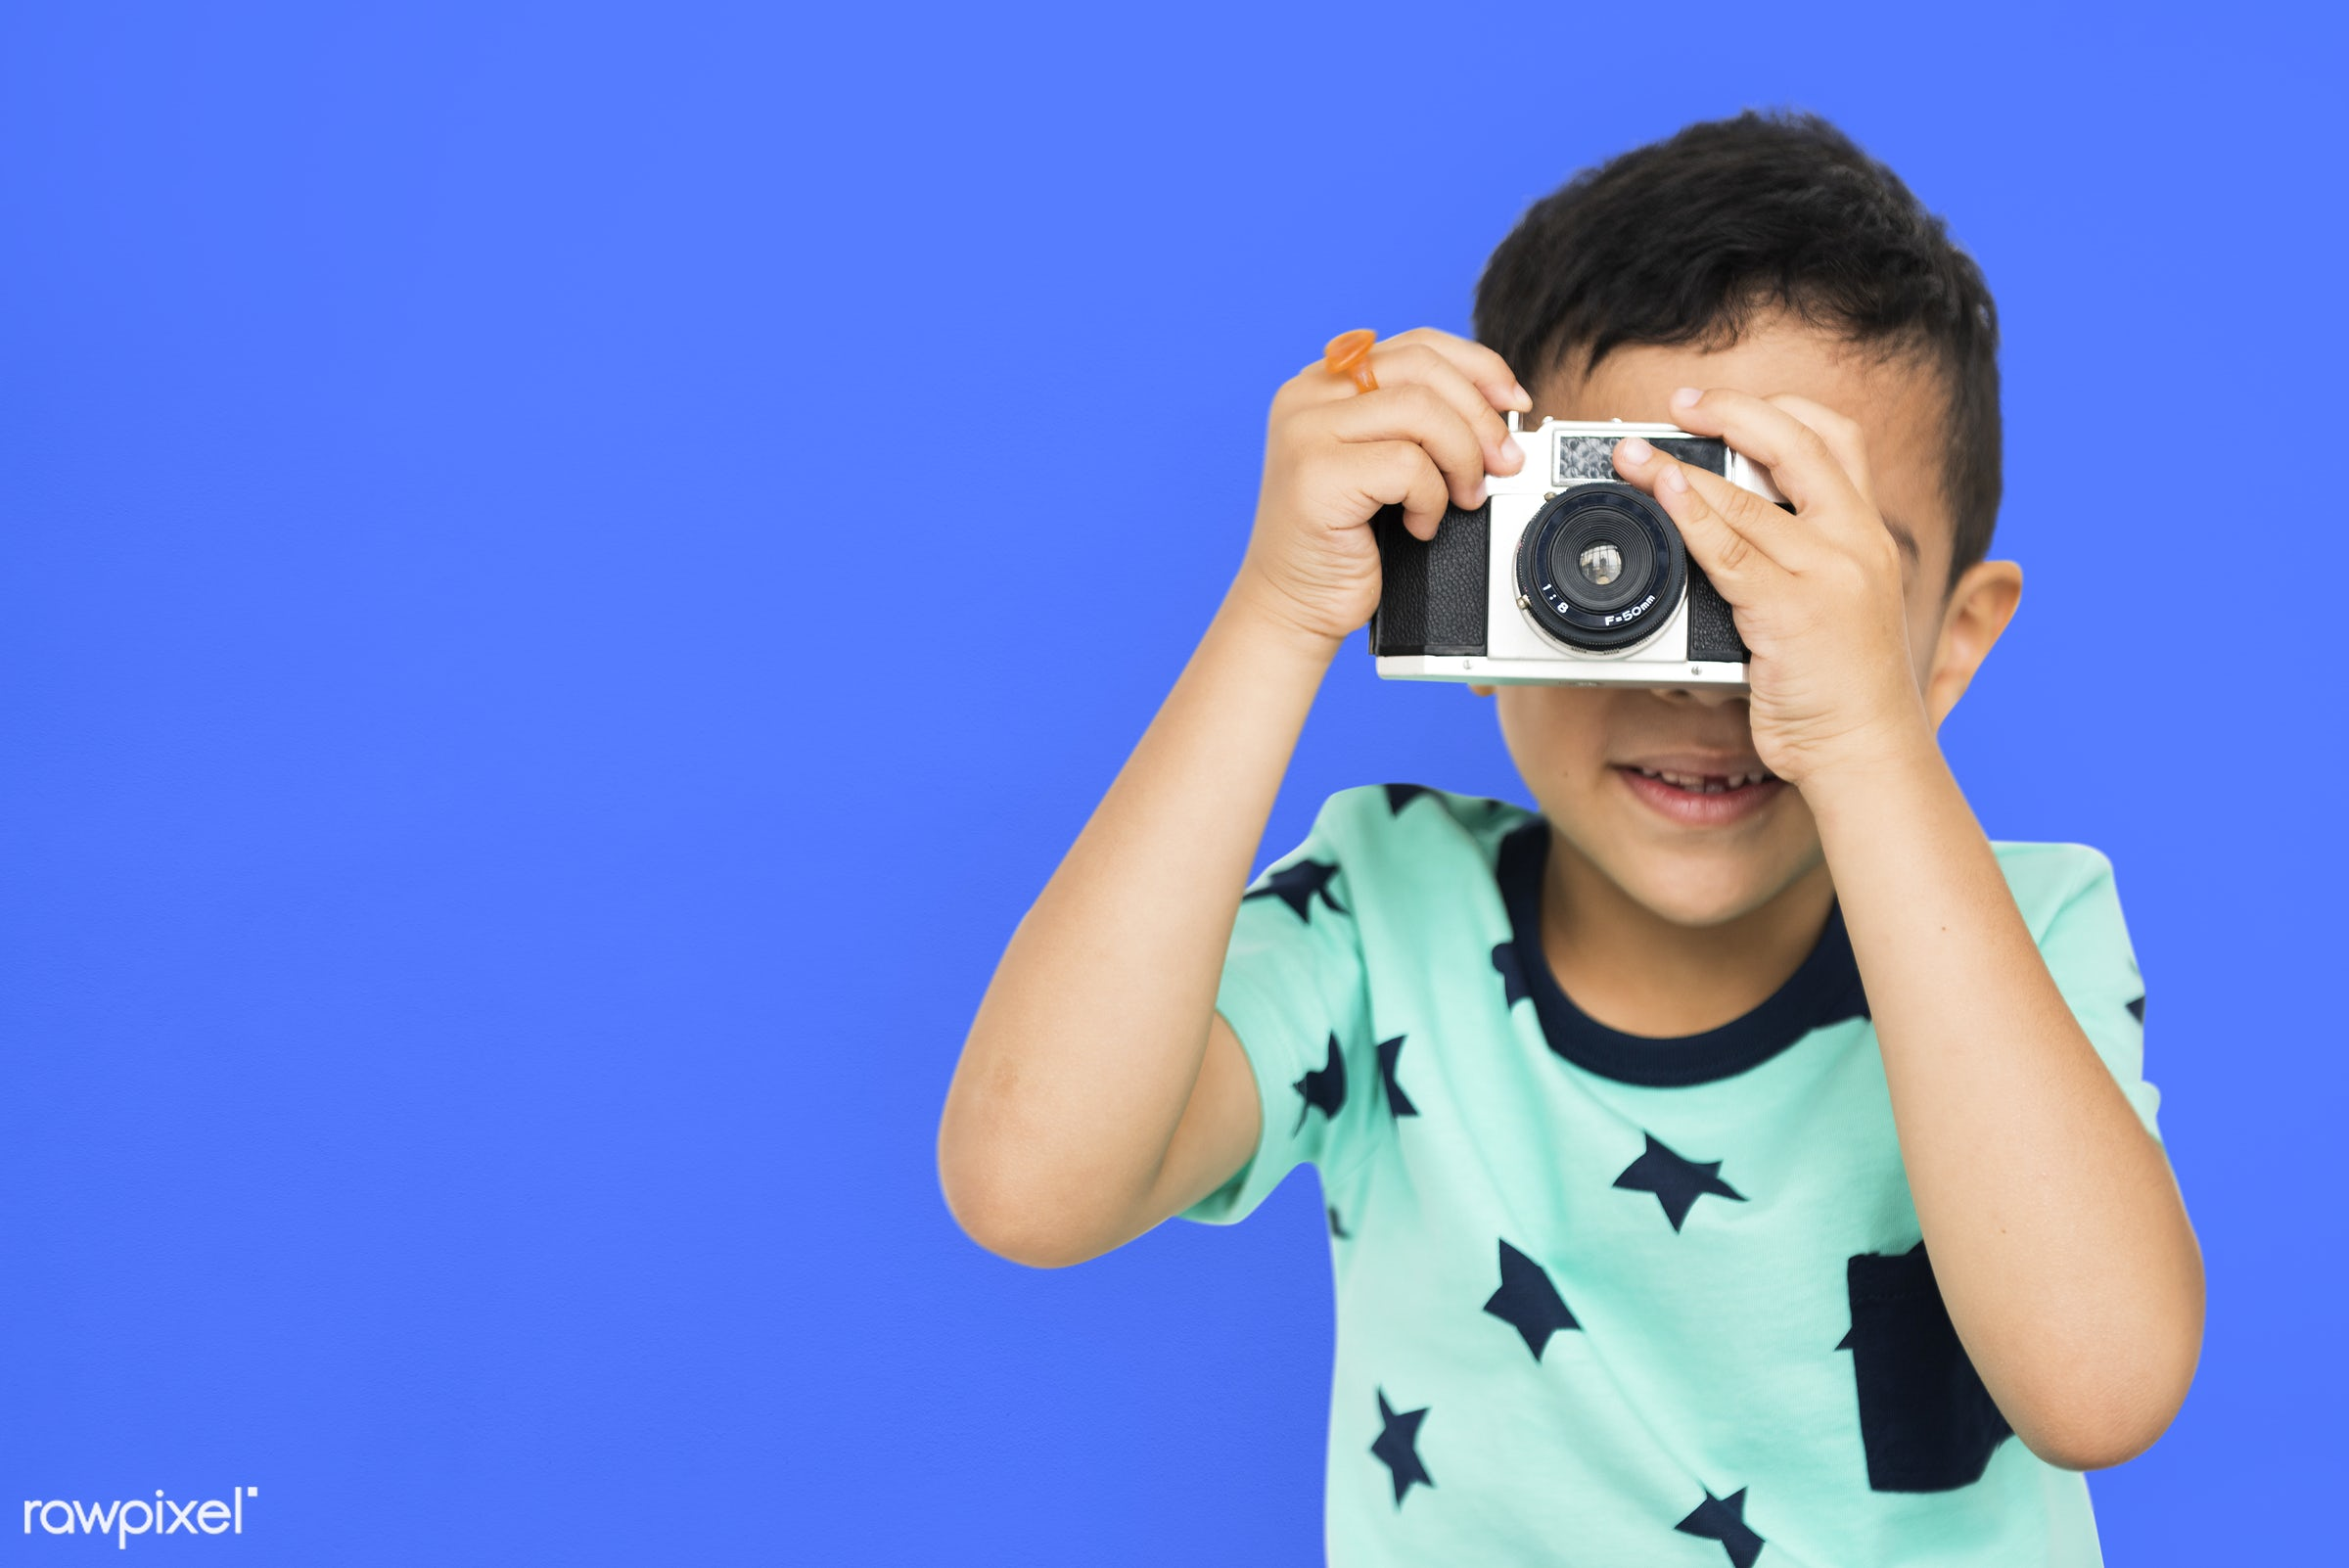 studio, expression, person, joy, little, cute, people, kid, child, joyous, happy, cheerful, isolated, camera, excited, fun,...